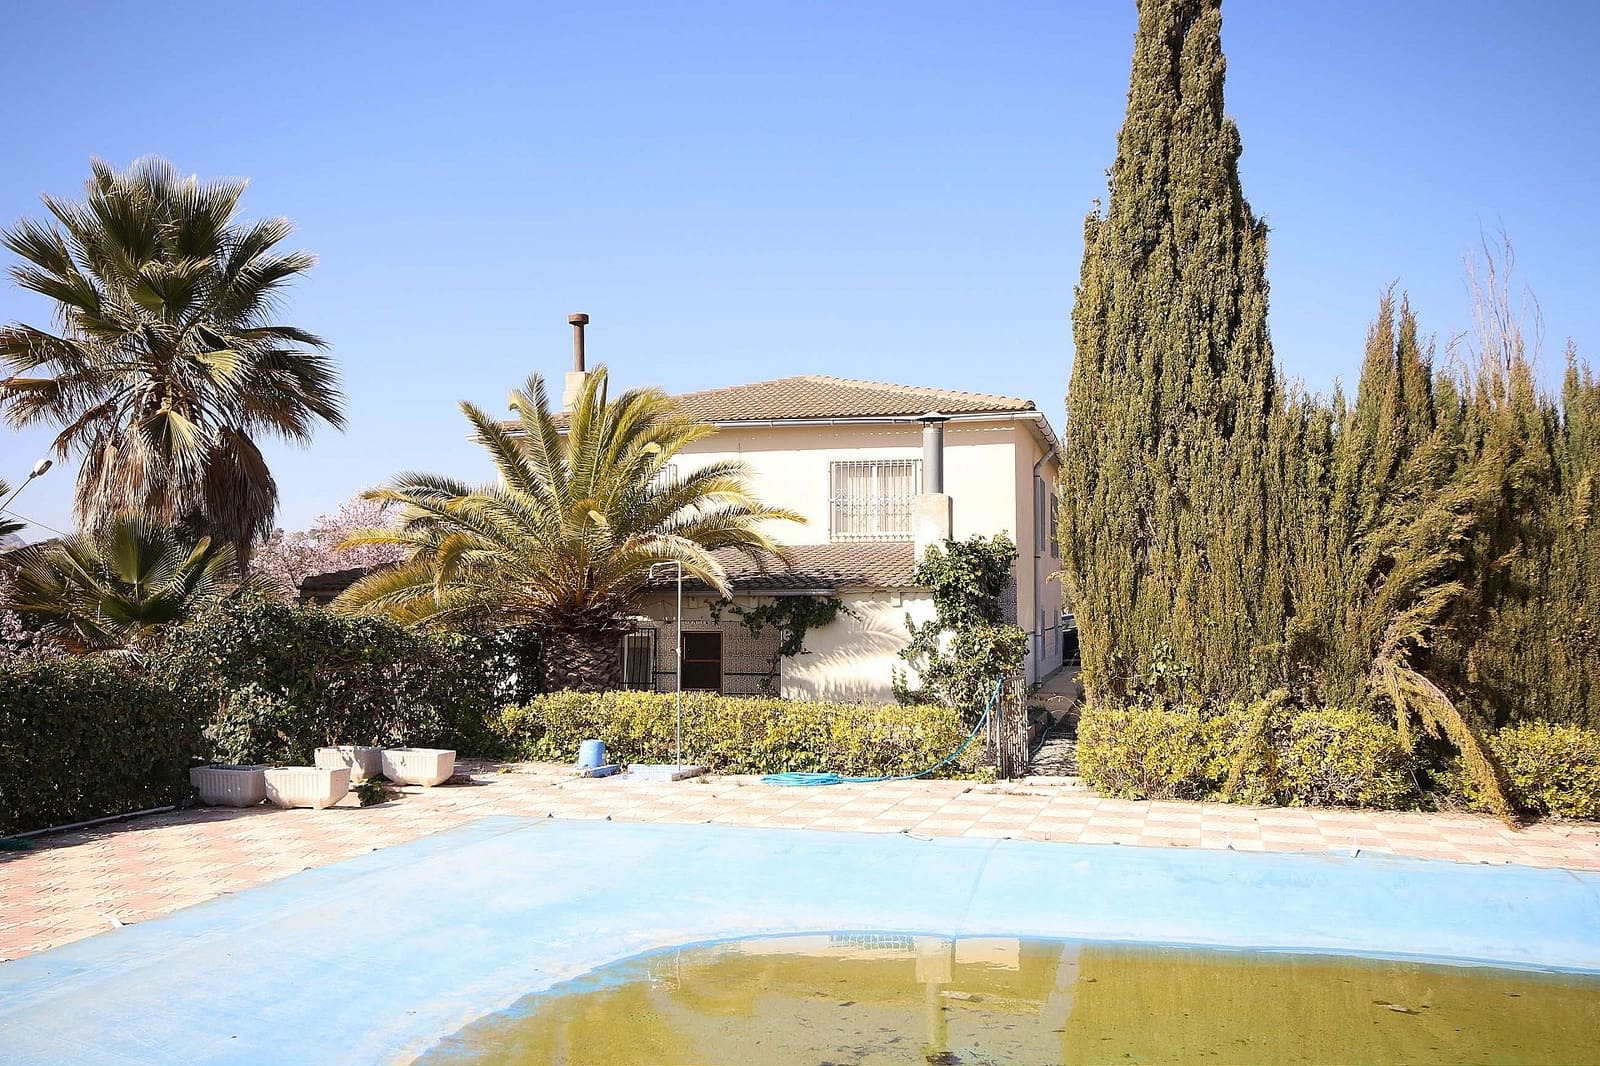 6 bedroom Finca/Country House for sale in Petrel / Petrer with garage - € 140,995 (Ref: 5393207)